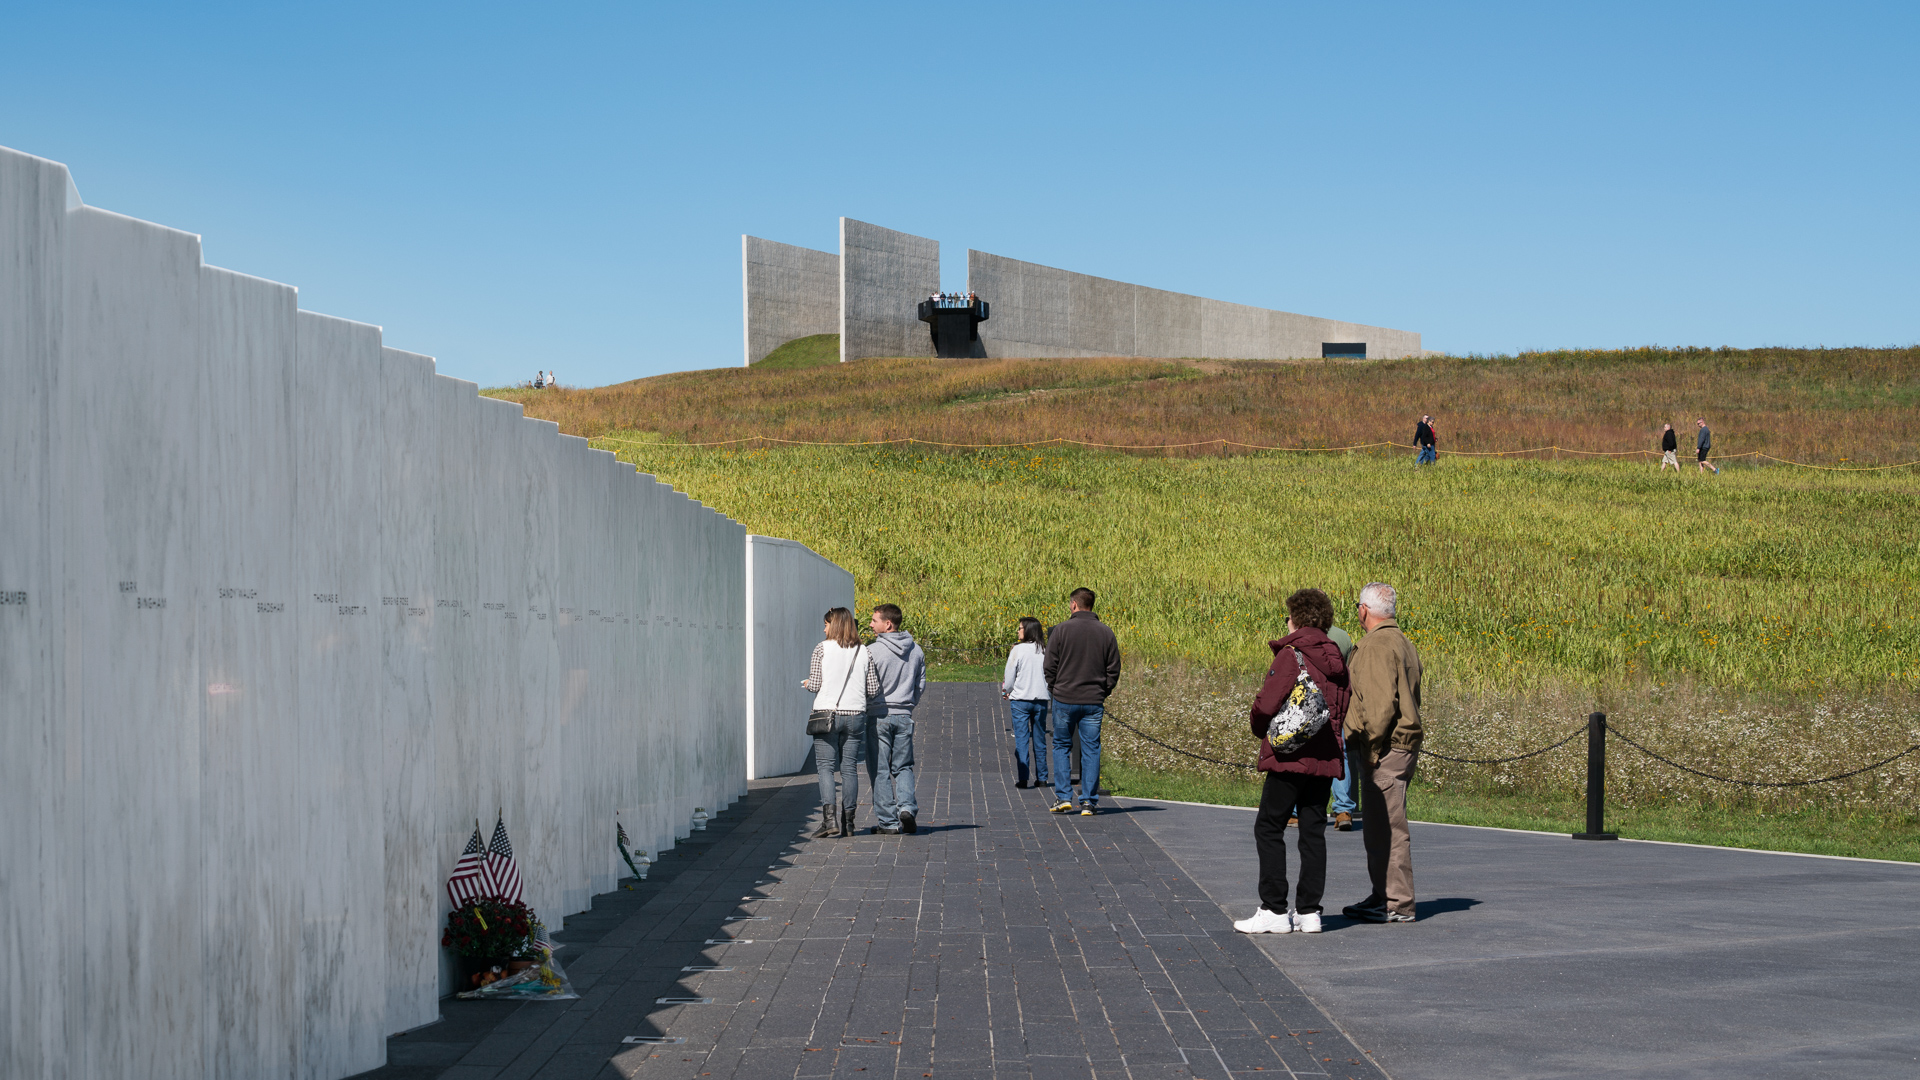 Marble panels with the names of passengers and crew members who perished on Flight 93.